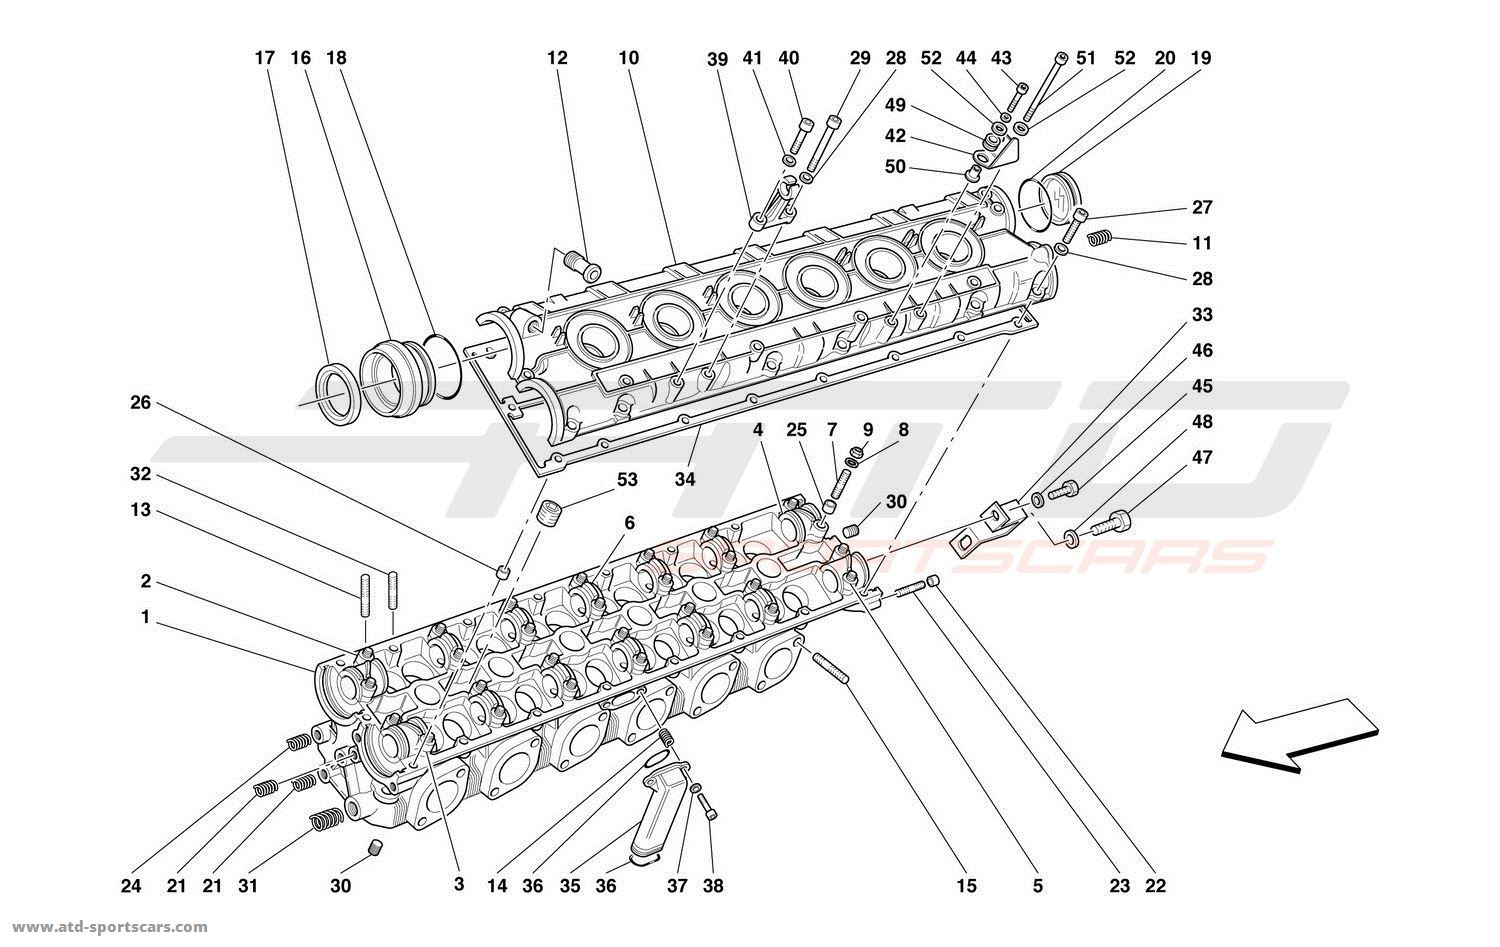 Ferrari 550 Barchetta Engine Parts At Atd Sportscars